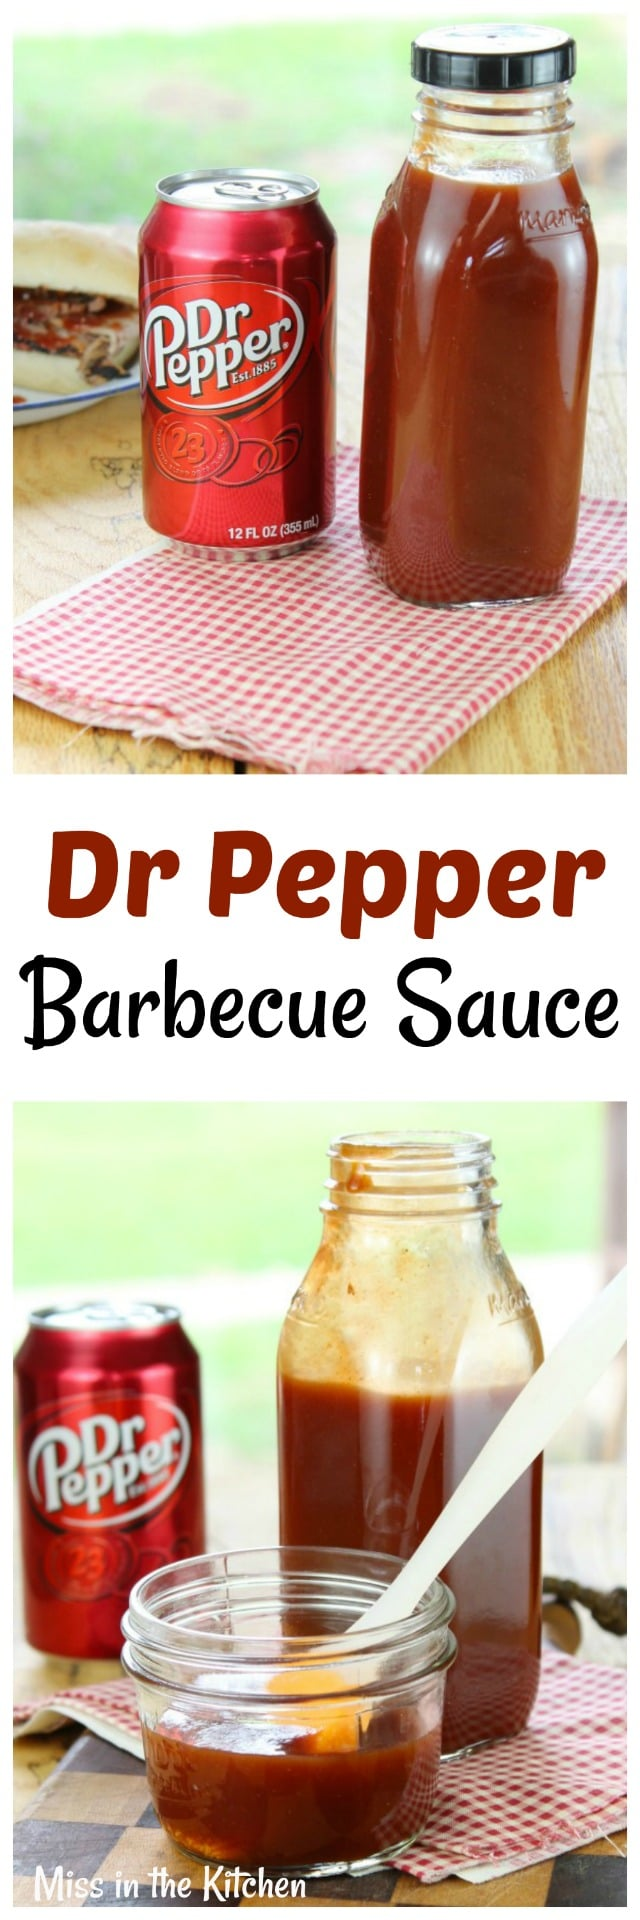 Dr Pepper Barbecue Sauce Recipe ~ Easy homemade barbecue sauce perfect for grilling or as a dipping sauce From MissintheKitchen.com #Barbecue